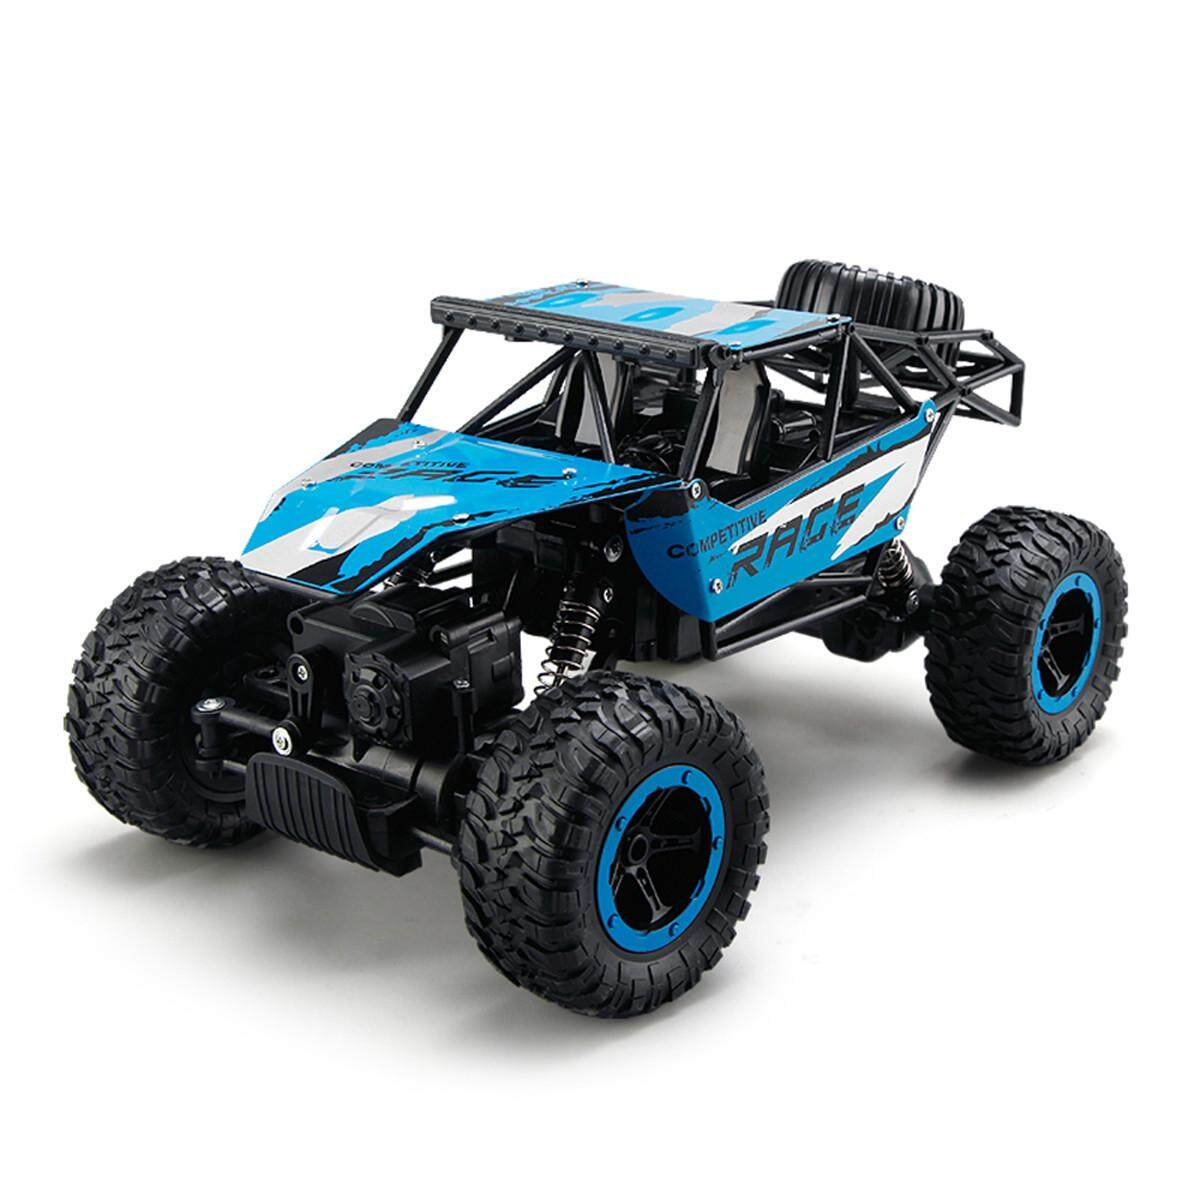 2.4G Remote Control 4WD 1:14 RC Monster Truck Off-Road Vehicle Buggy